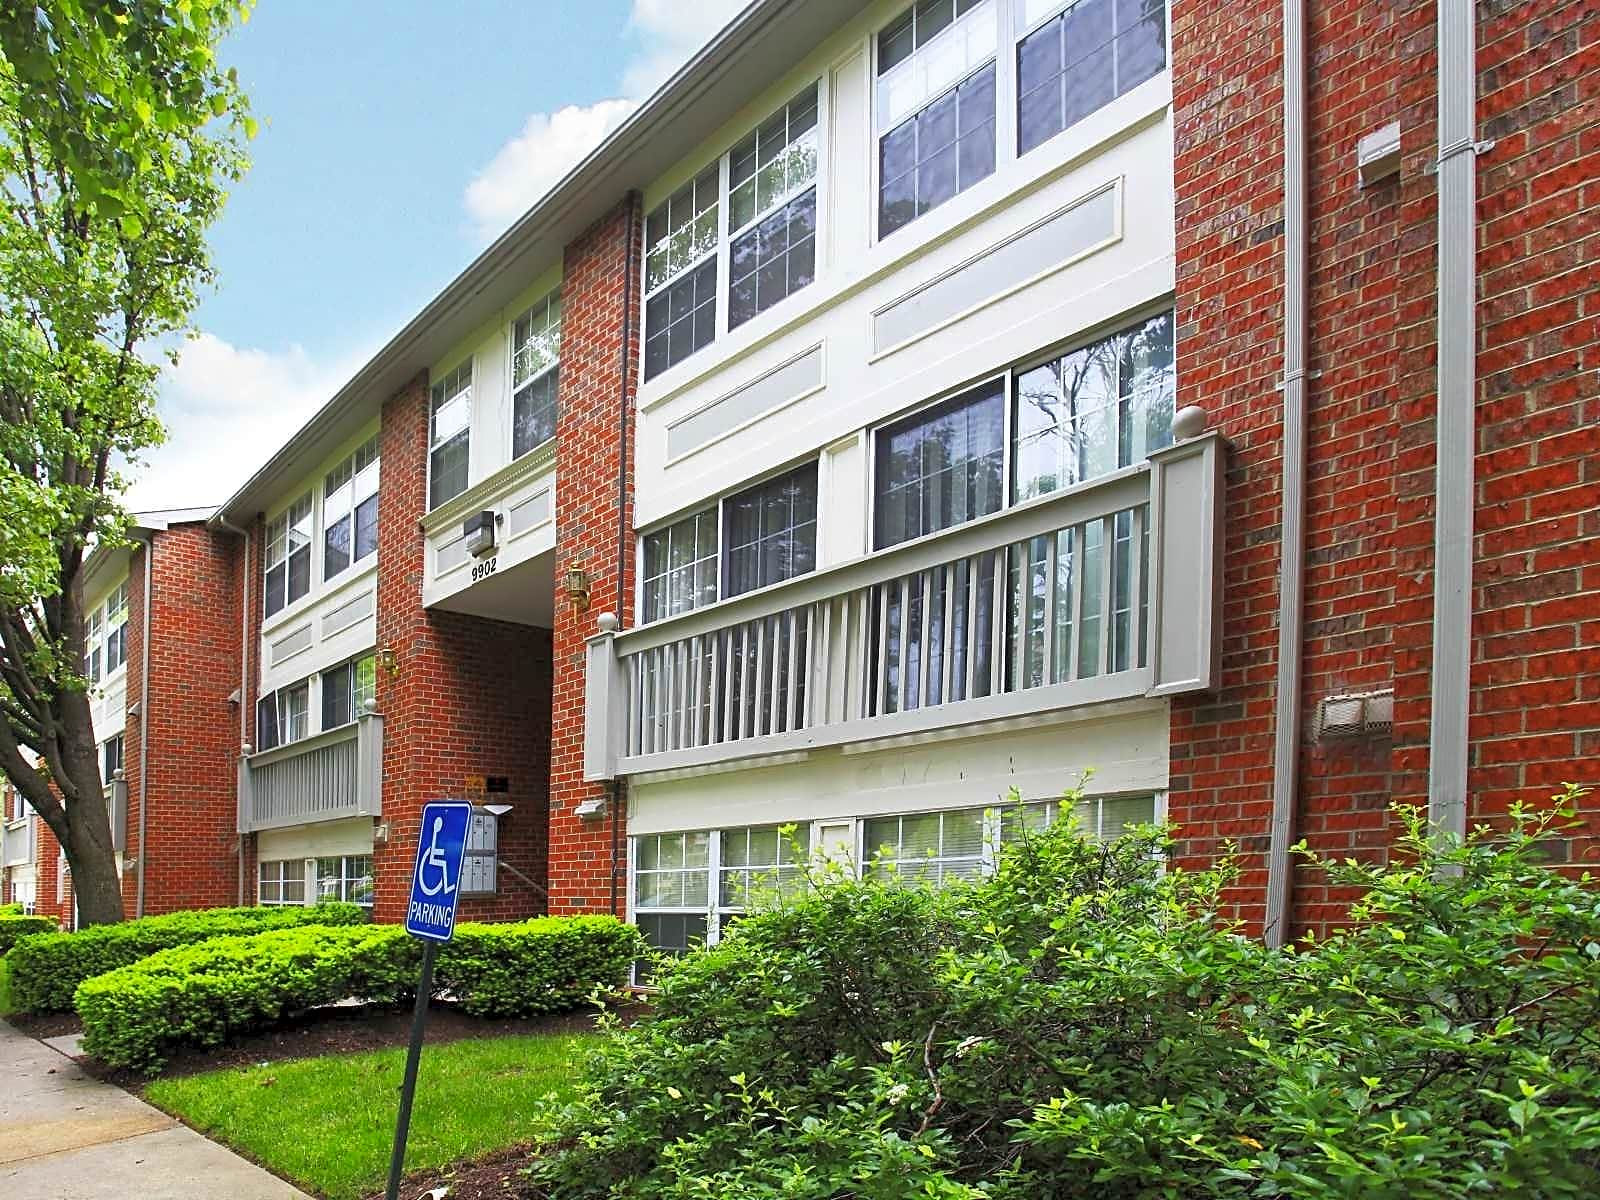 Montgomery Club for rent in Gaithersburg